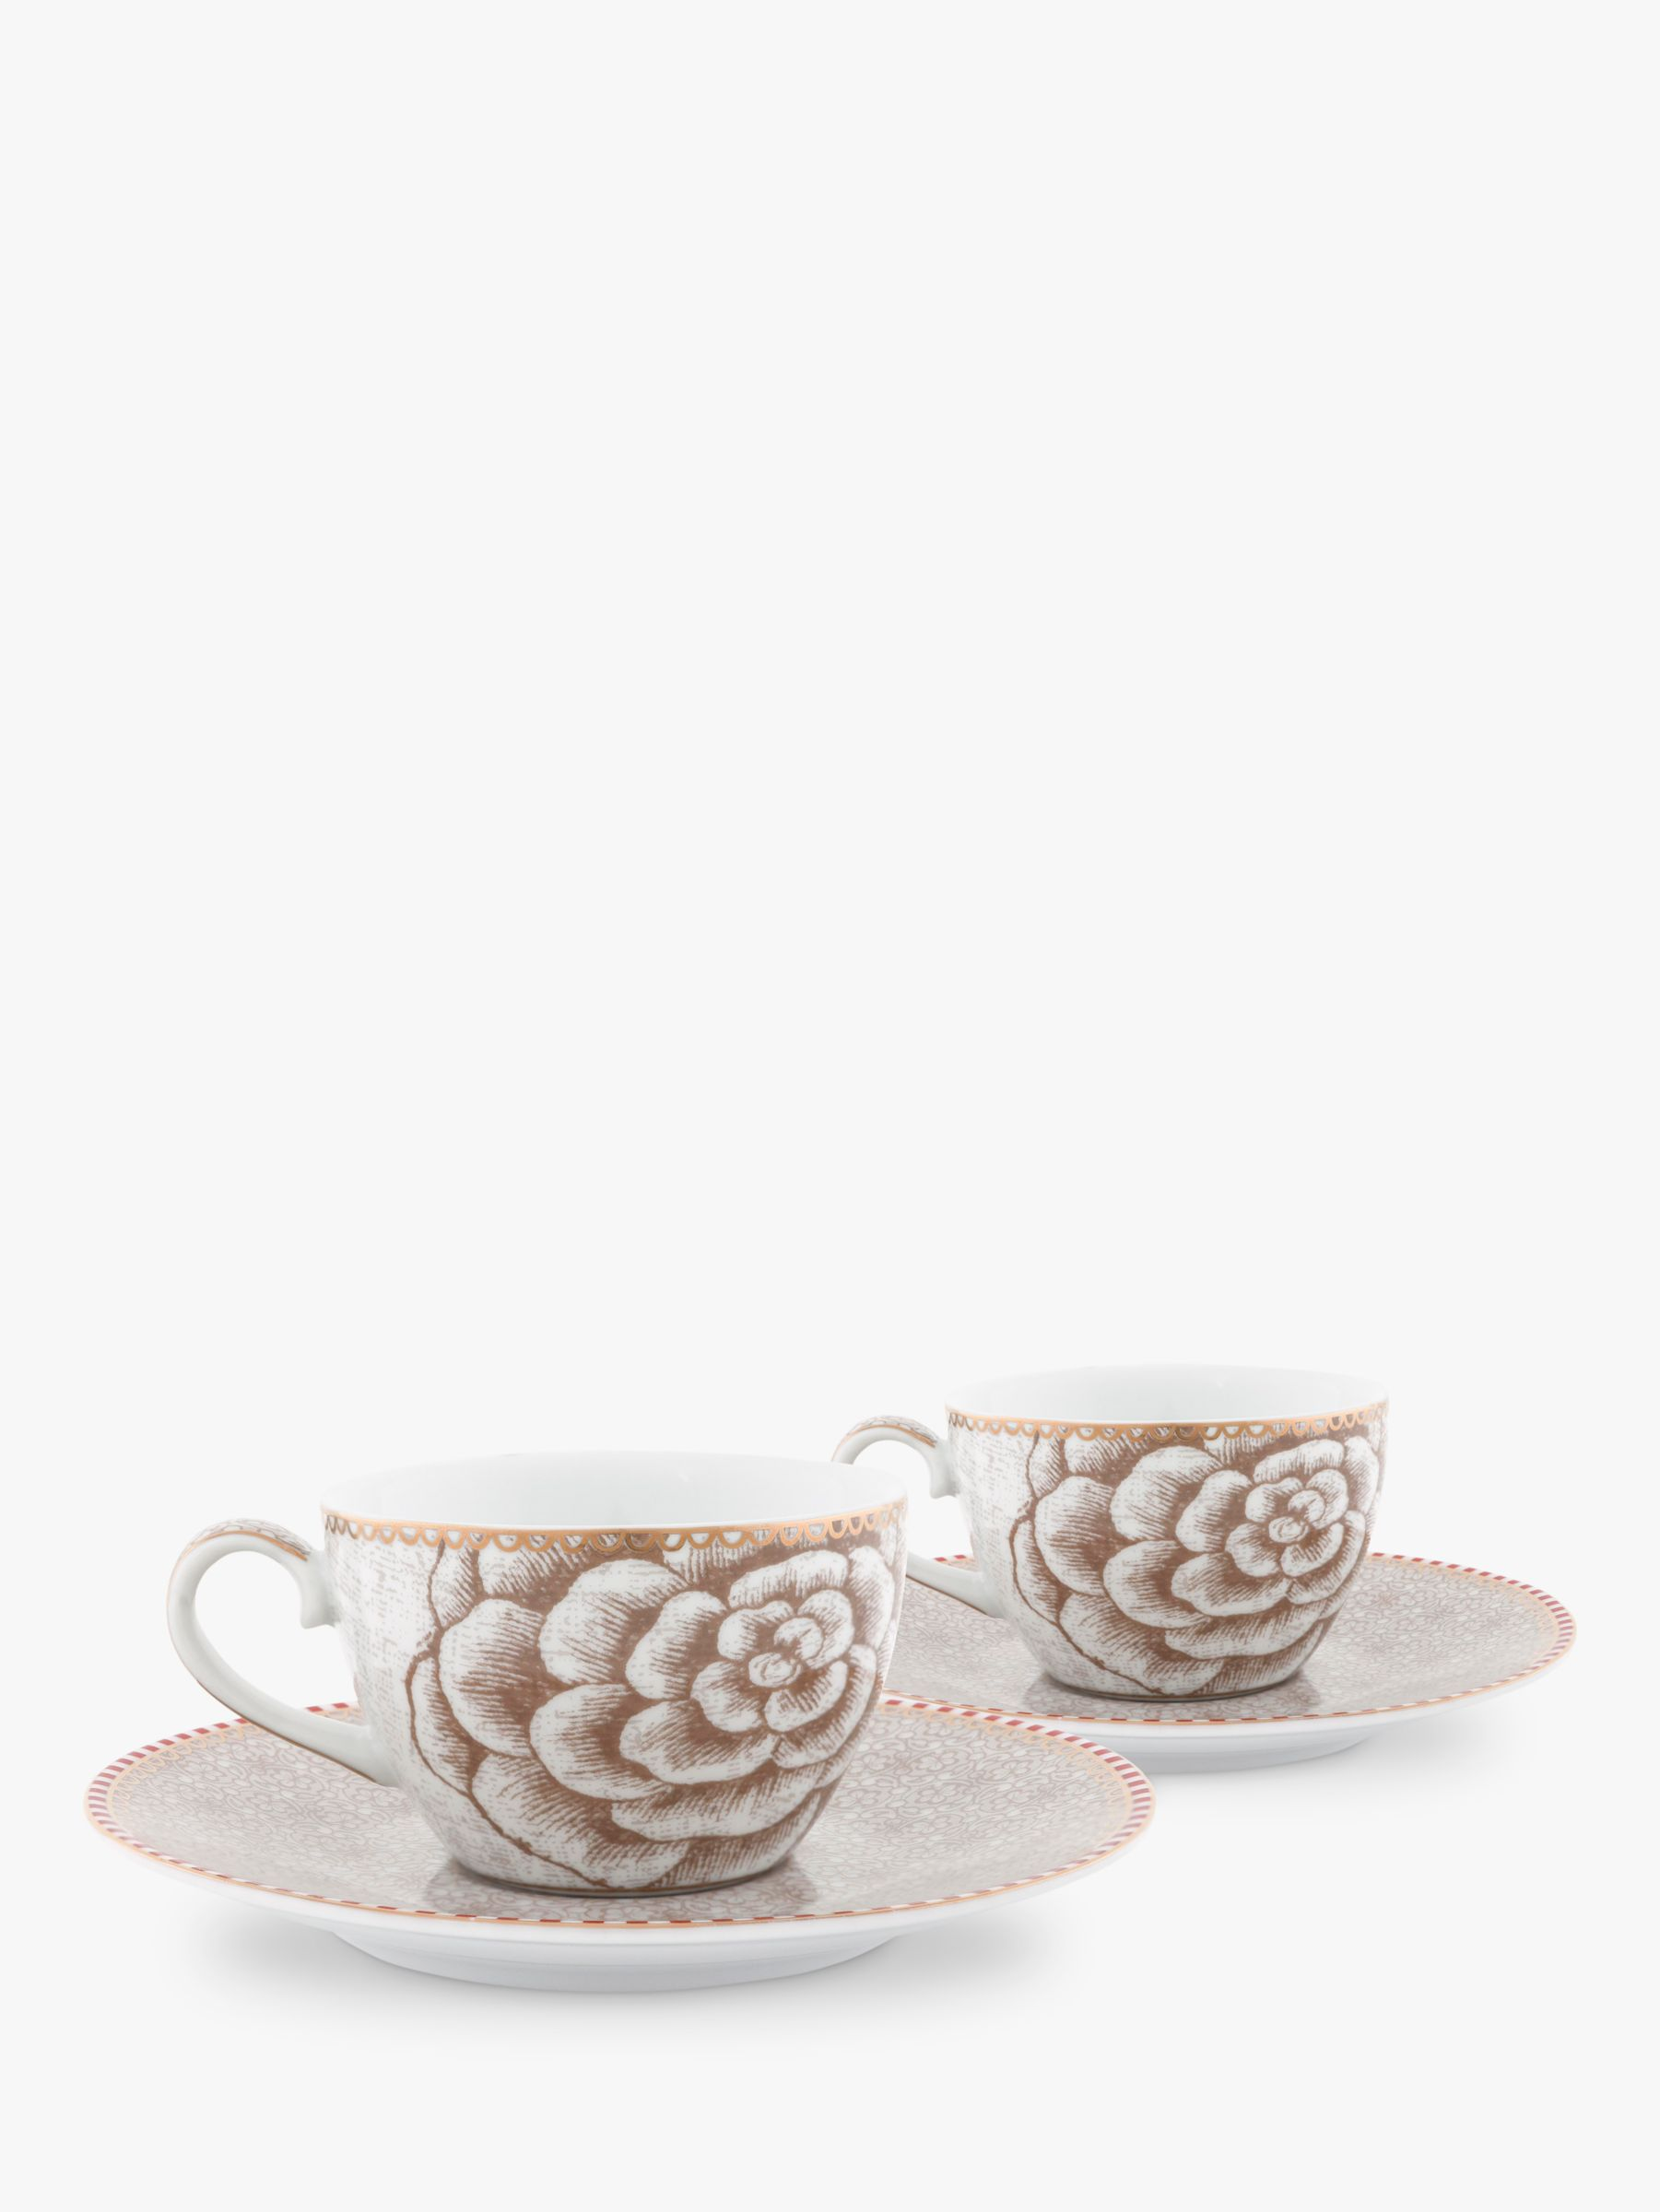 PiP Studio PiP Studio Spring to Life Cup & Saucer, Set of 2, Cream